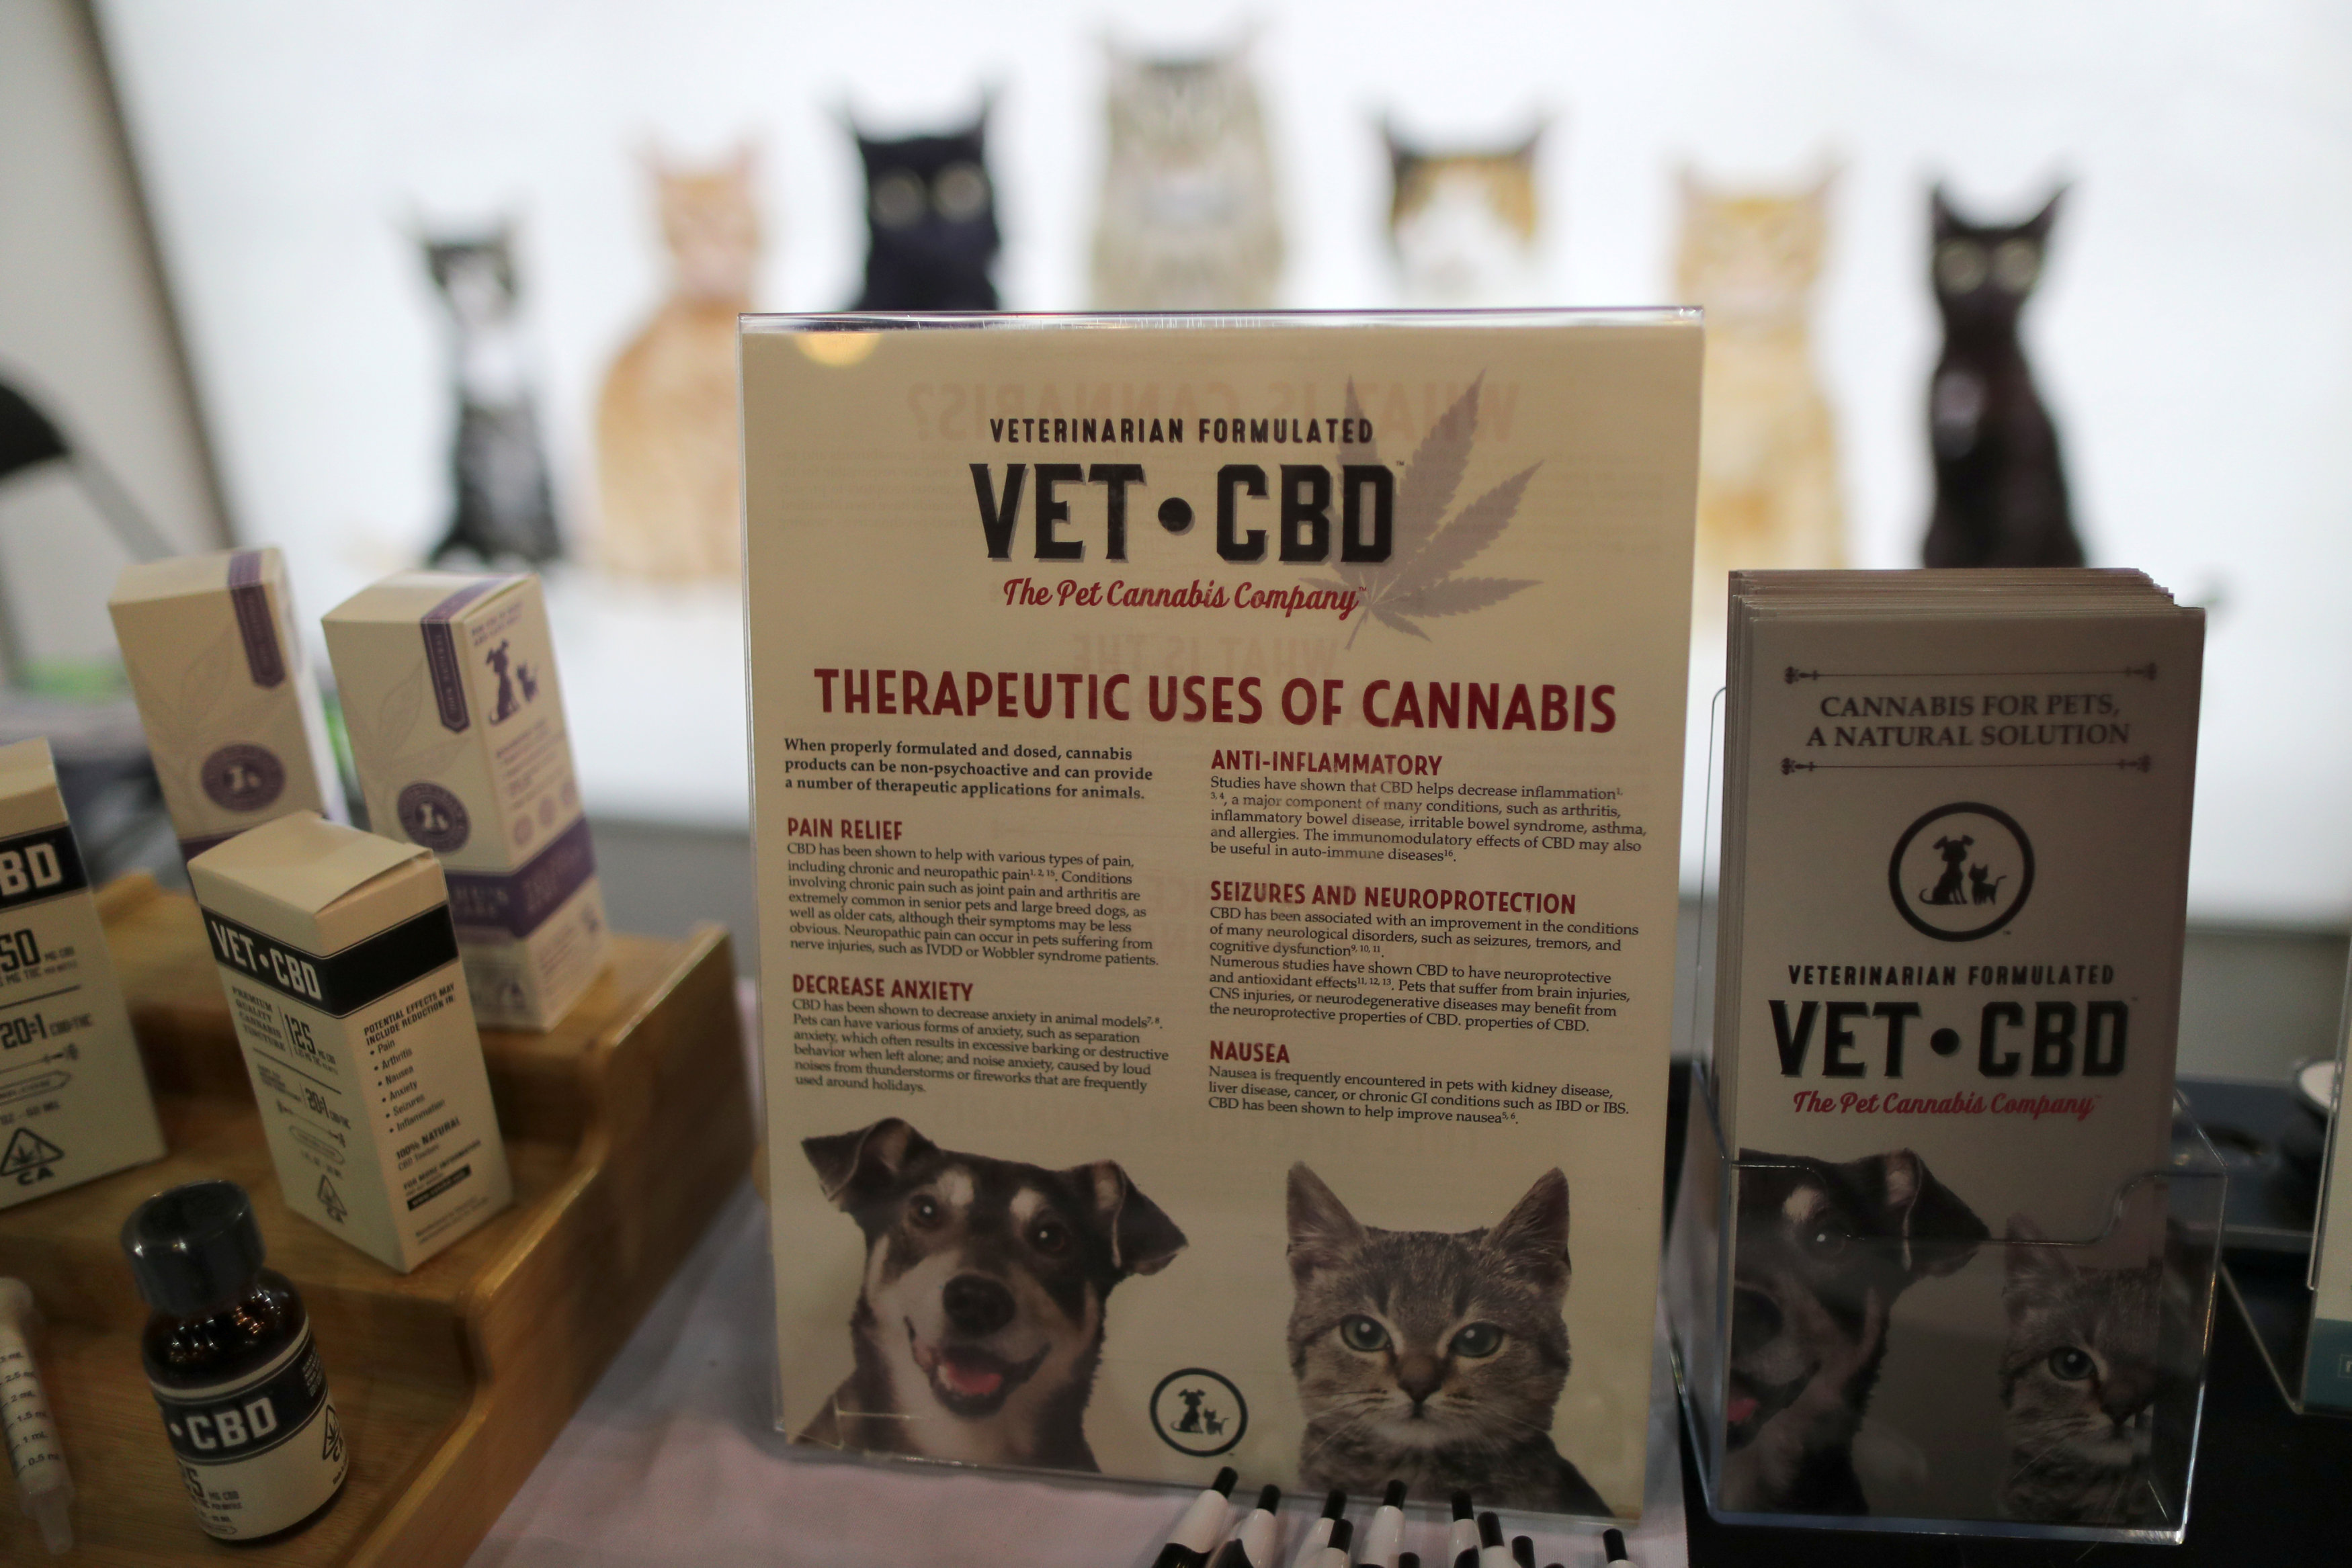 The Vet CBD Pet Cannabis Company booth is seen at CatCon in Pasadena